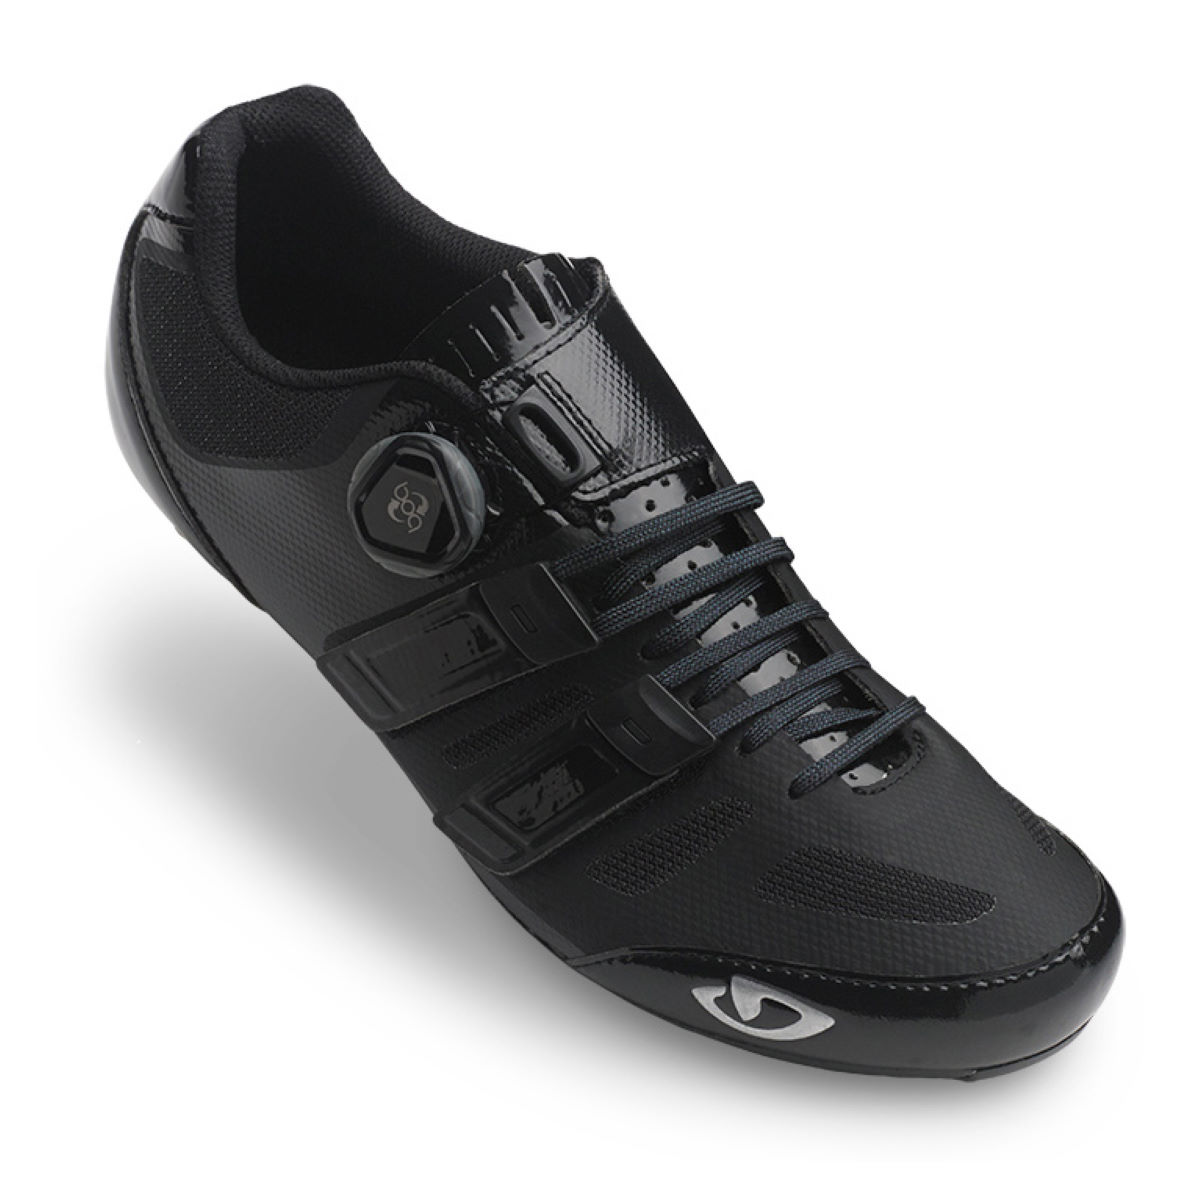 Giro Giro Sentrie Techlace Road Shoe   Cycling Shoes